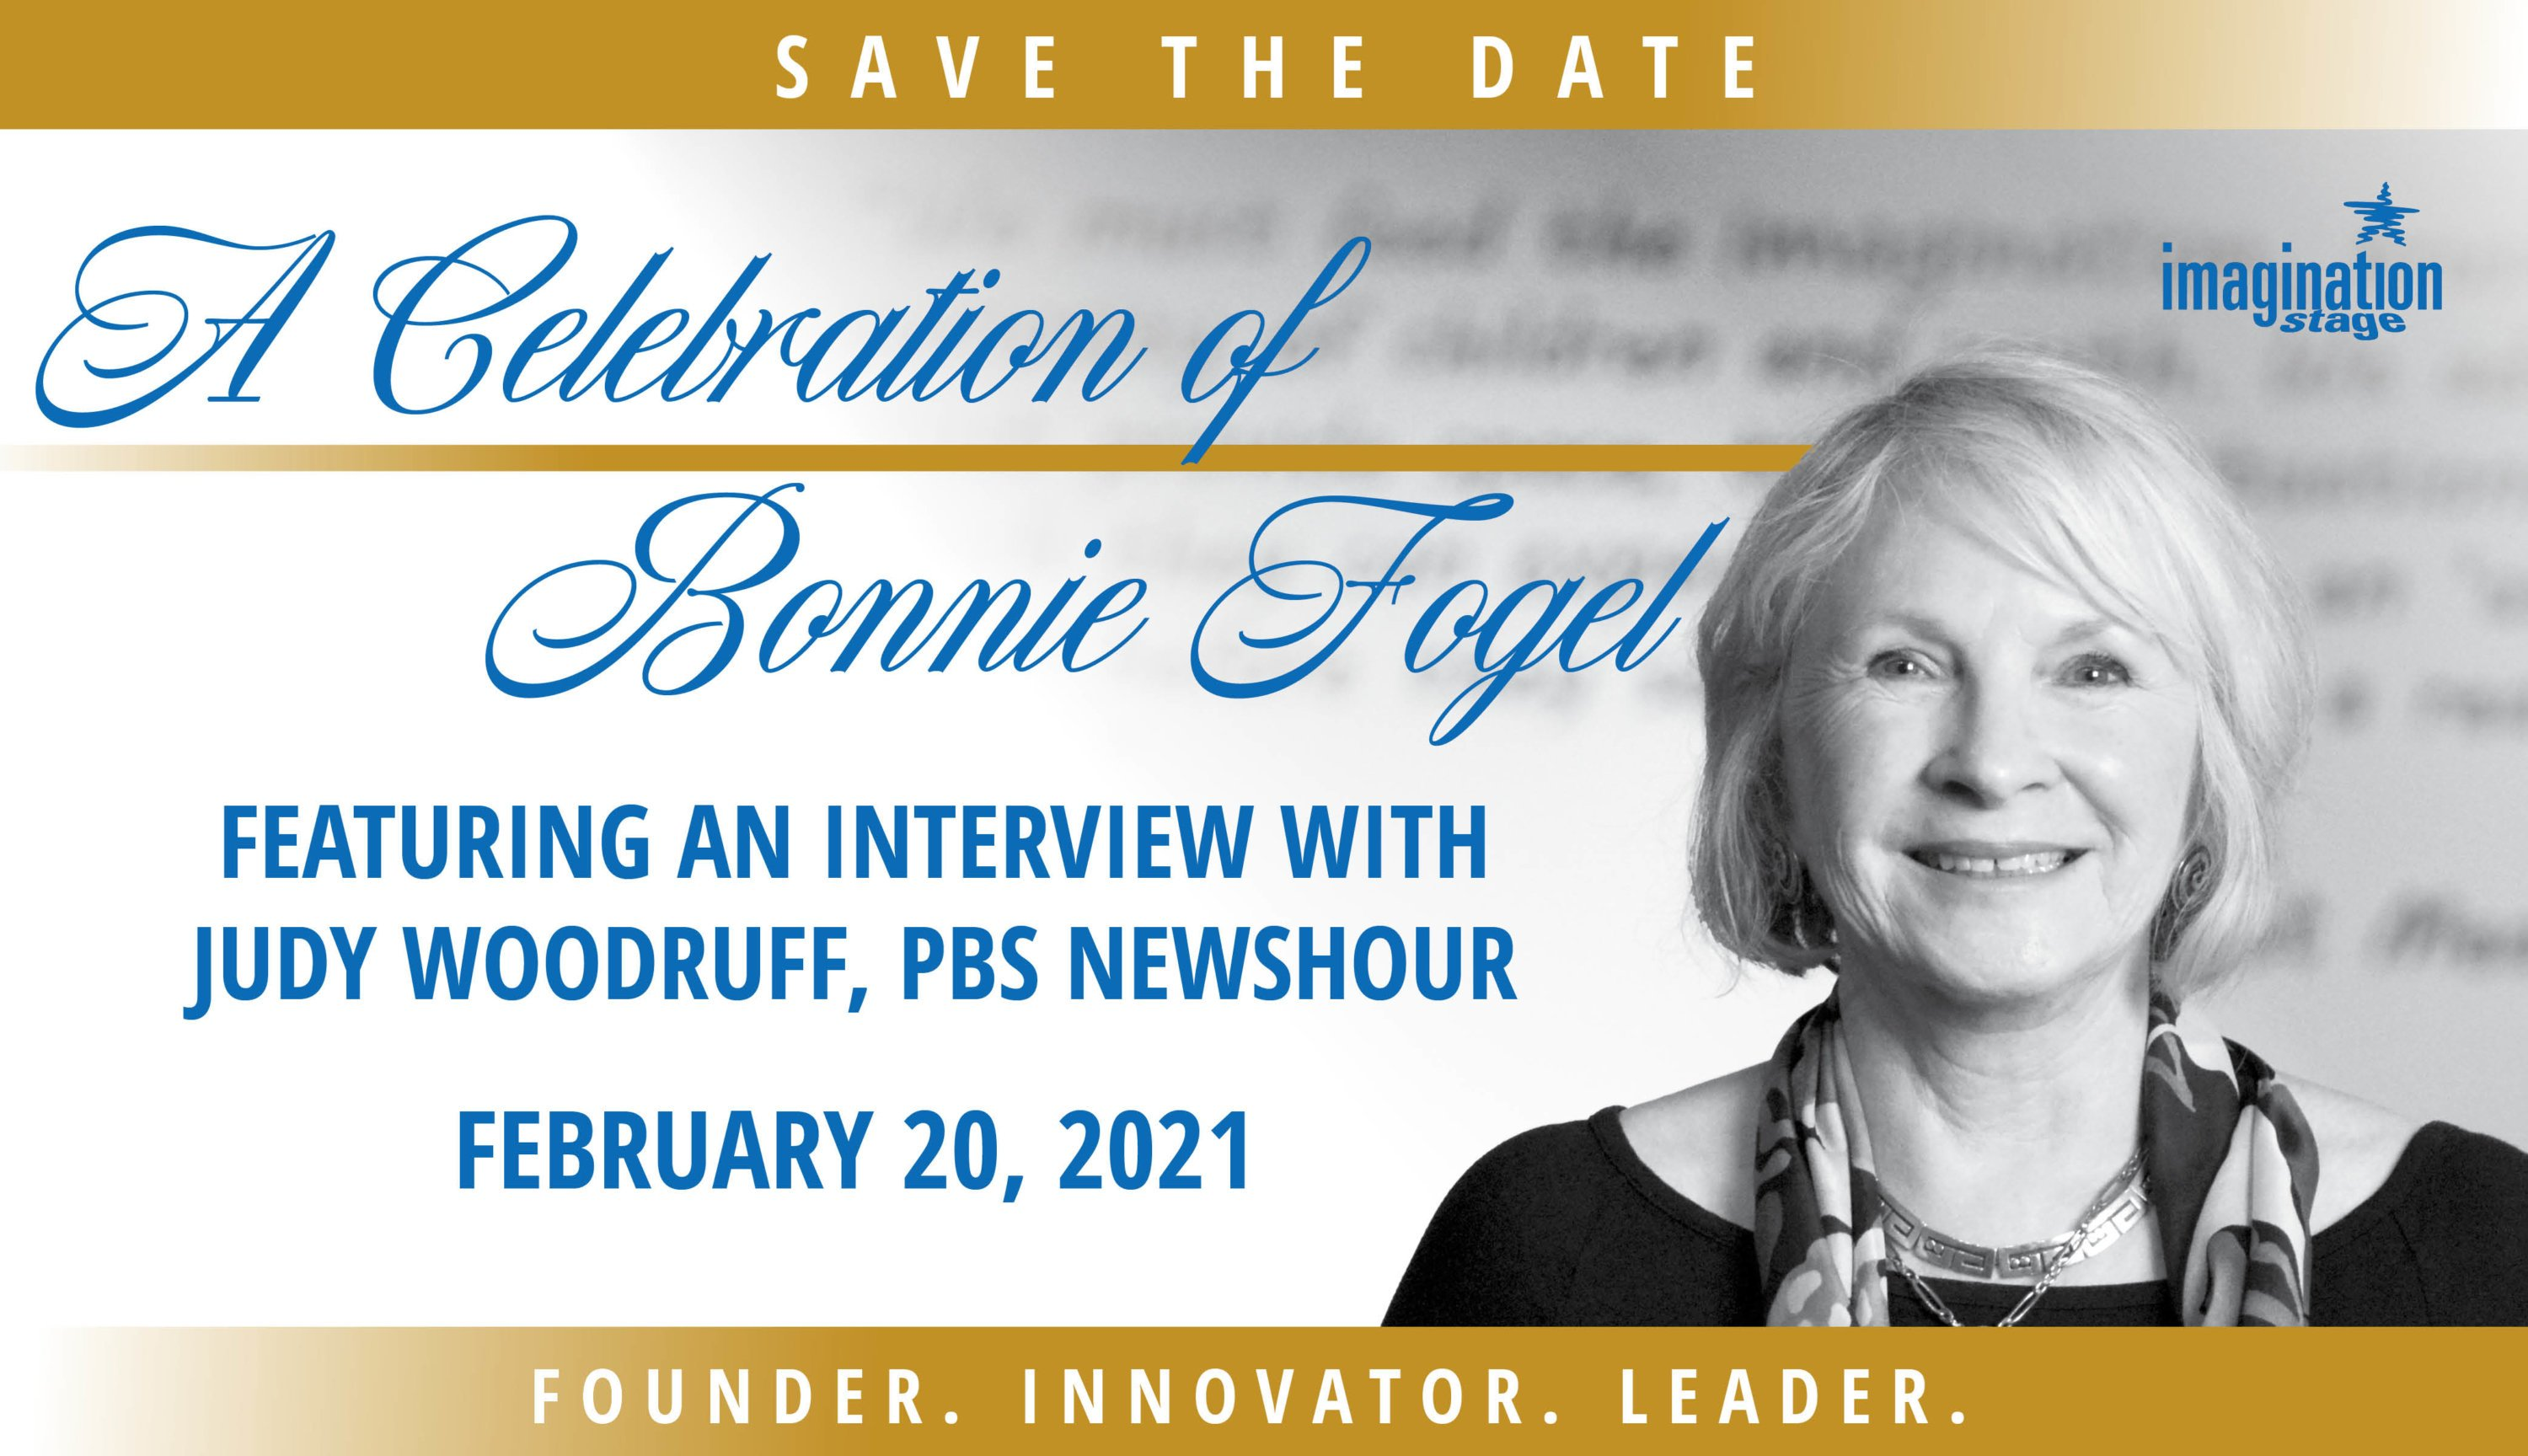 A Celebration of Bonnie Fogel Featuring an interview with Judy Woodruff, PBS NewsHour